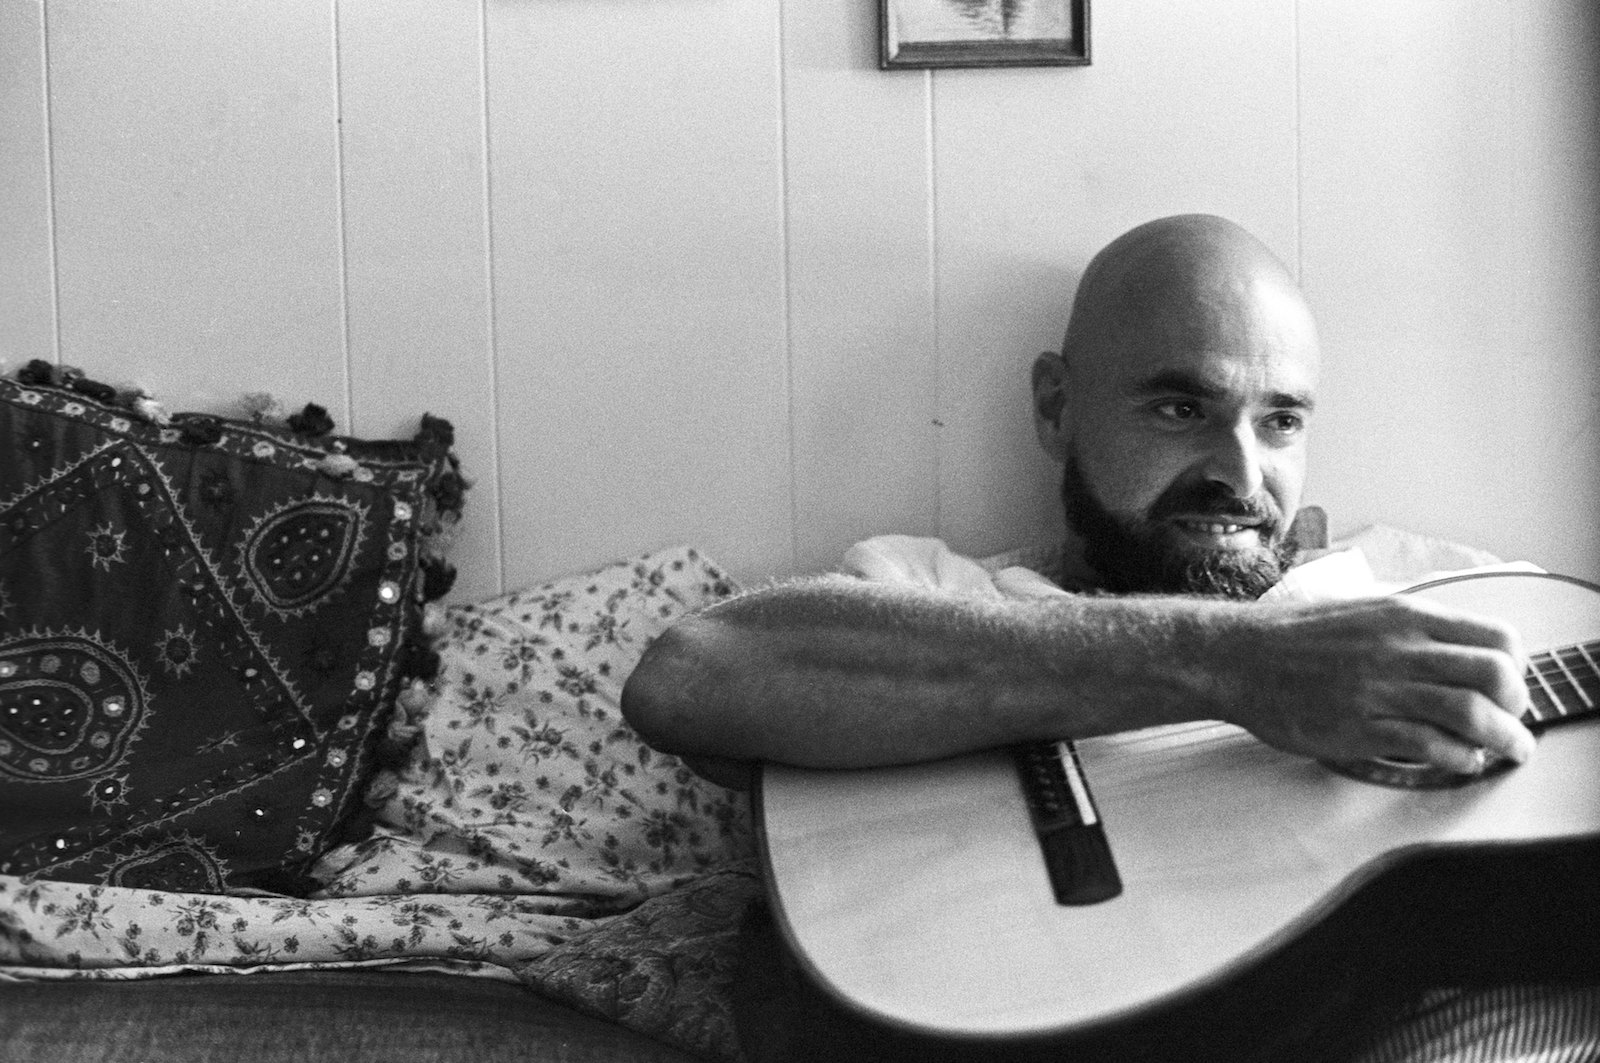 a black and white image of shel silverstein, who is a bald man with a beard holding a guitar